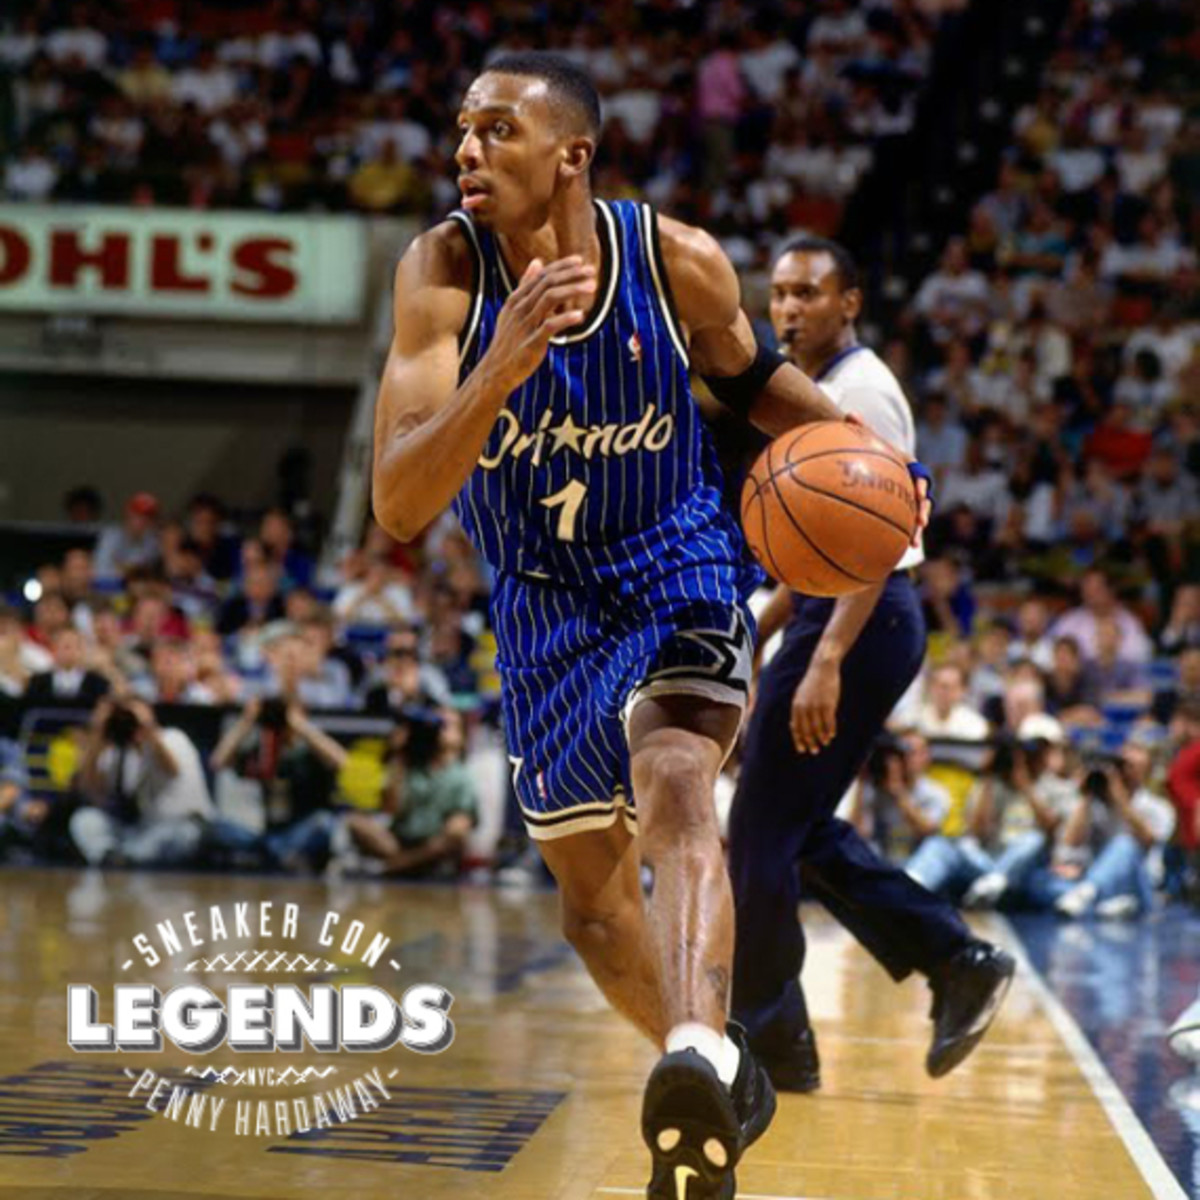 Sneaker Con Legends: Penny Hardaway - New York City | Saturday, December 6th 2014 - 0